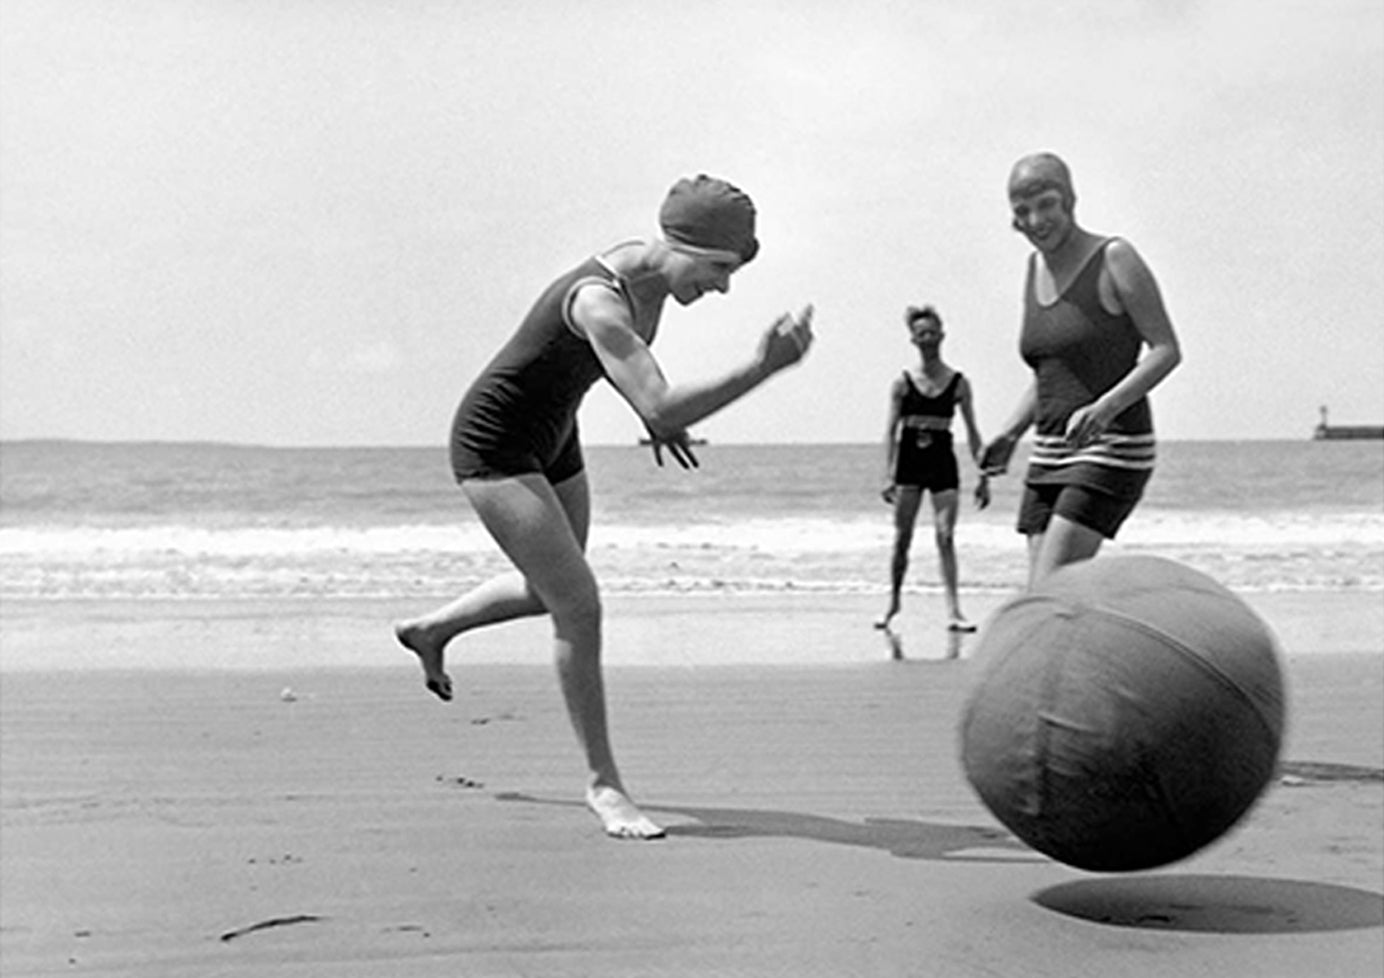 Jacques-Henri Lartique People Playing on the Beach